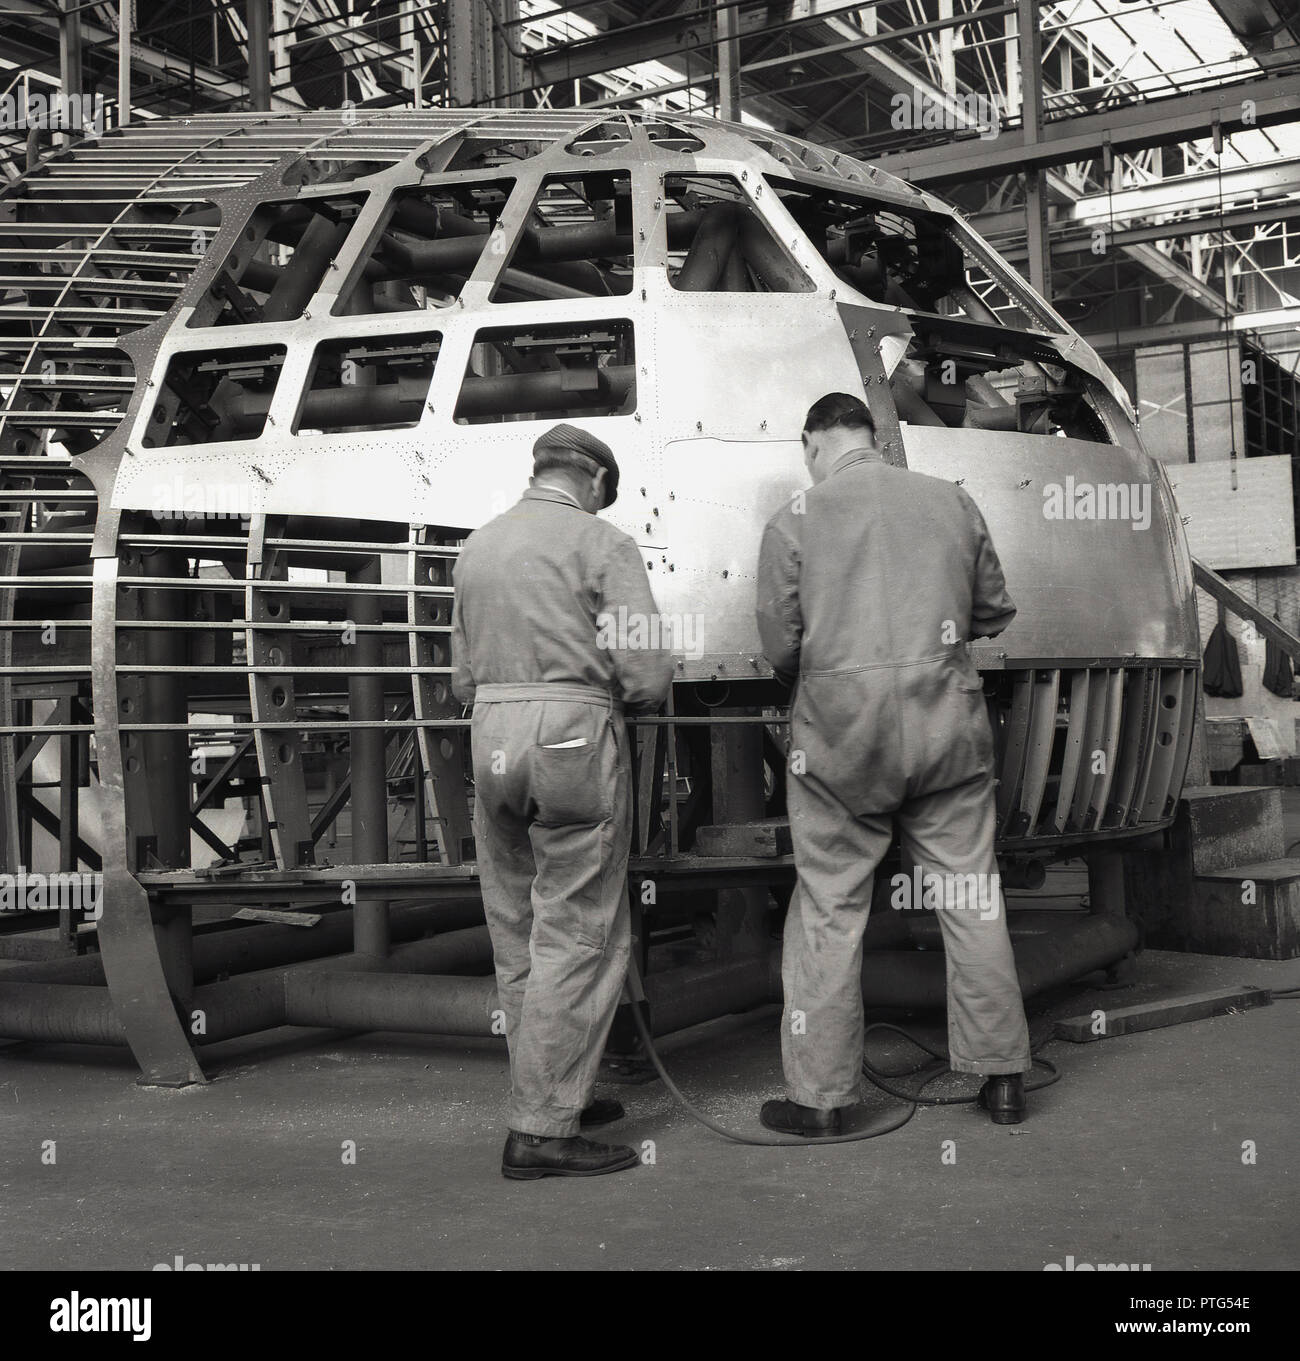 1950s, historical, aviation, two male mechanics or engineers in overalls working on the exterior of an aircraft cockpit inside an aerospace factory or hanger, England, UK. - Stock Image